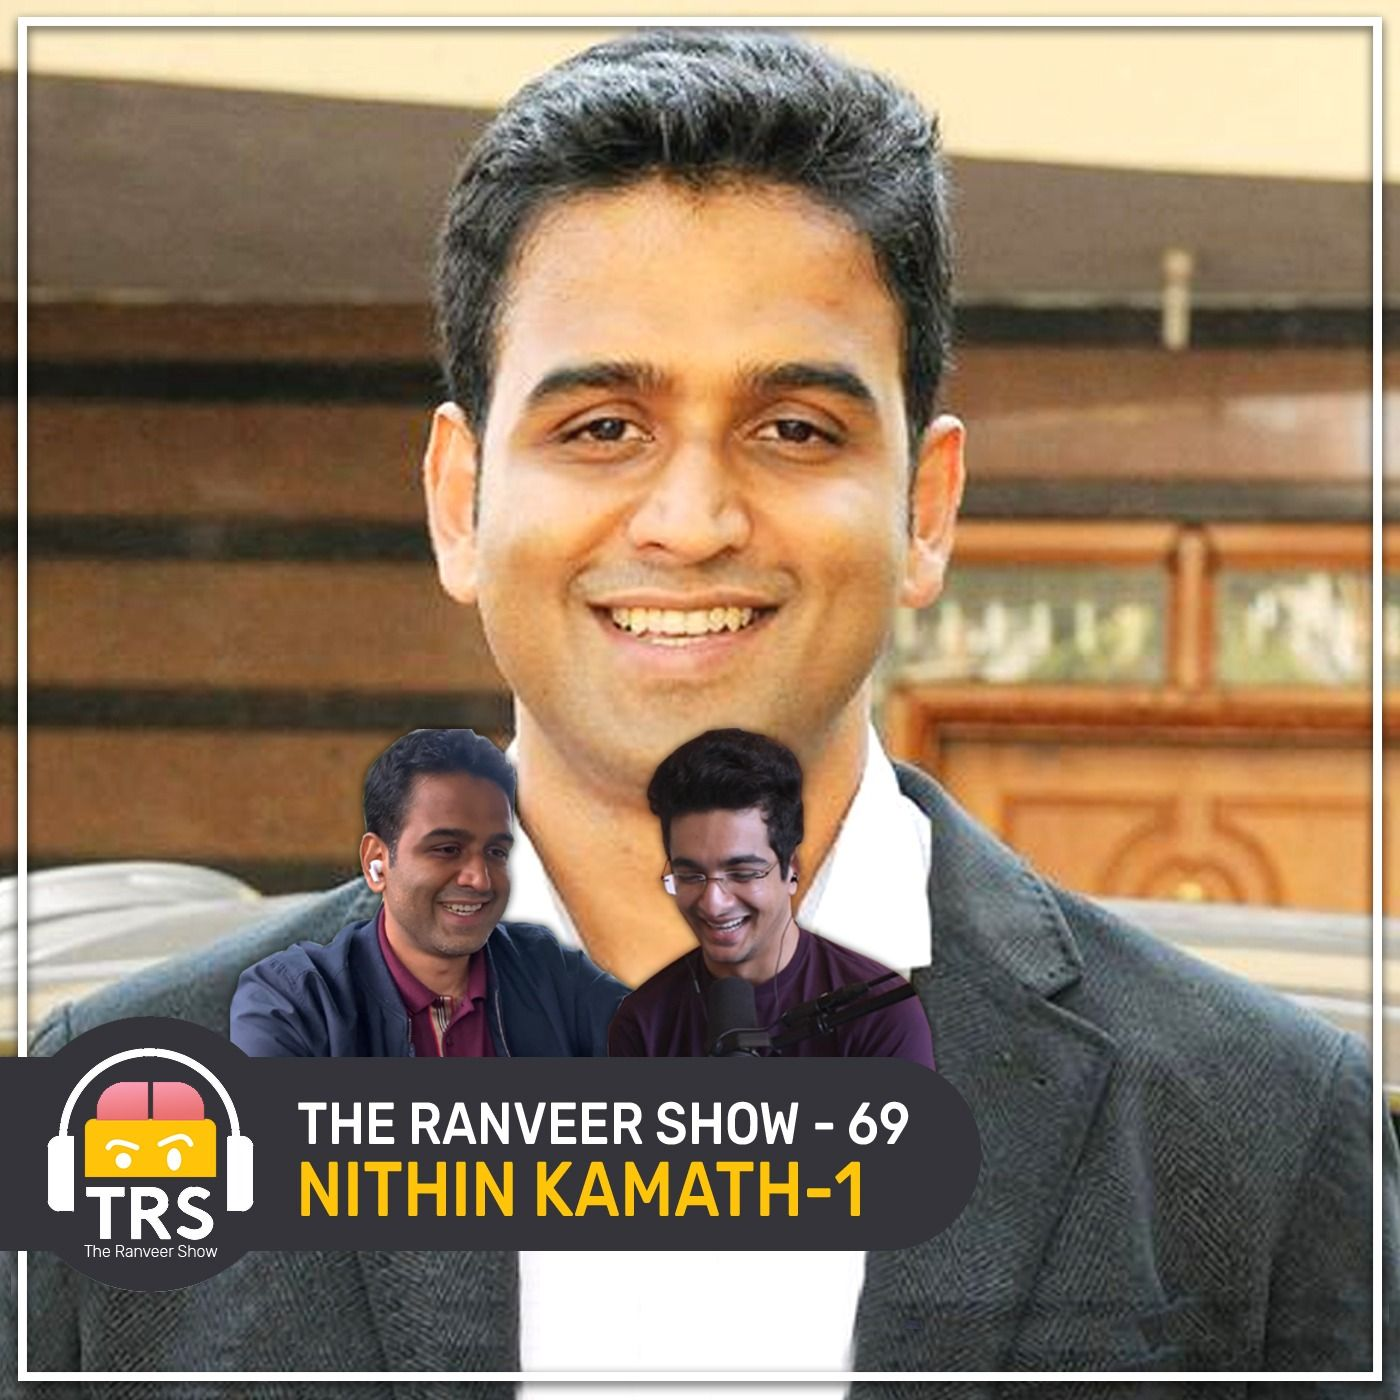 The Success Story Of Zerodha's SMART Business Journey ft. Nithin Kamath | The Ranveer Show 69